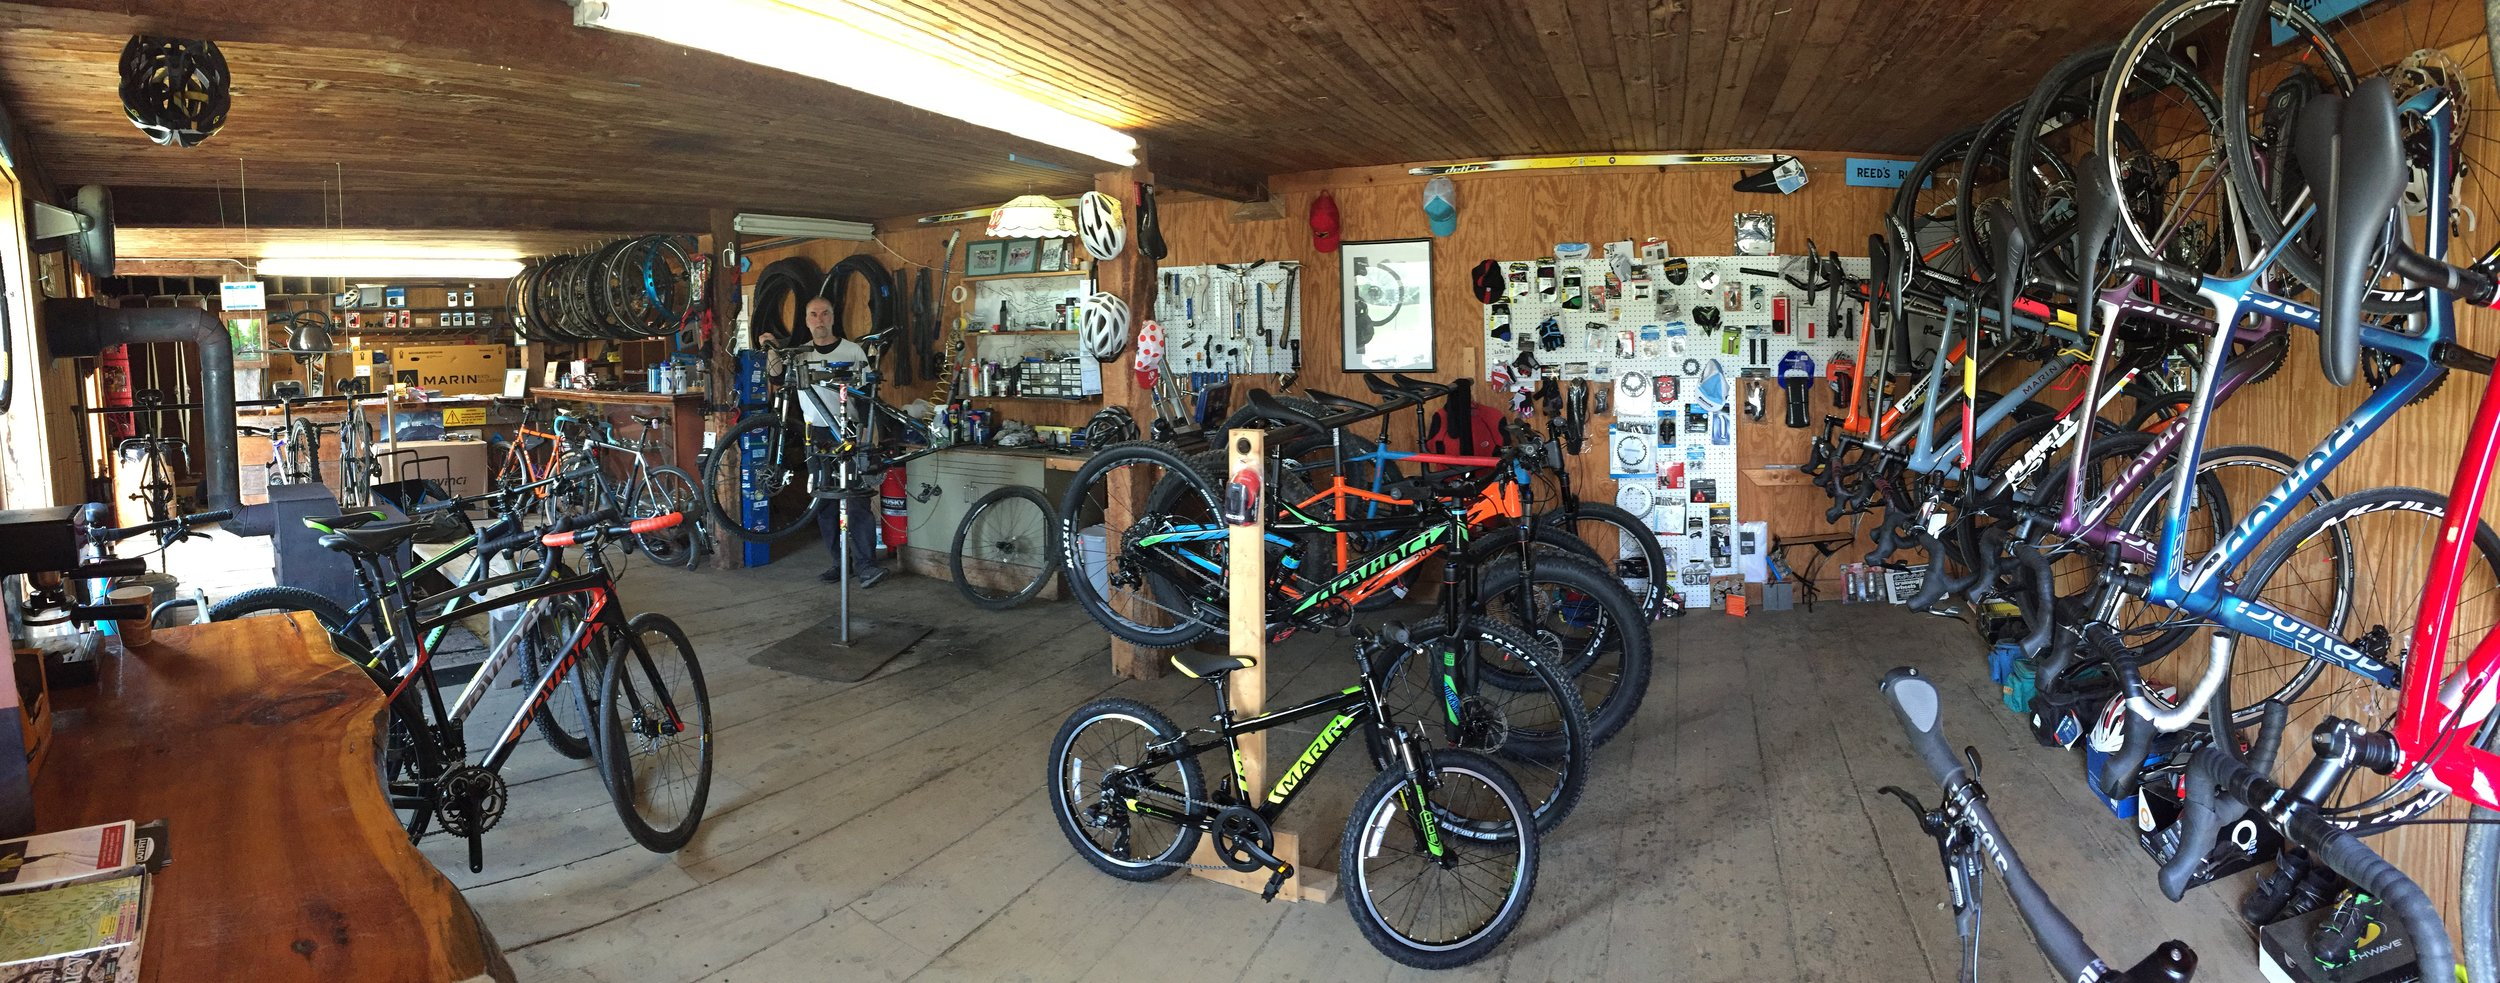 Hi, Big Ring Bob here... - I have been riding all kind of bikes for 50+ years and have been a mechanic for 30+ years. I love bikes and will serve you with passion and expertise. Also, I like giving trail and road ride options to visitors!Please stop by, go for a ride from the shop and have a good time! Ride/eat/sleep.